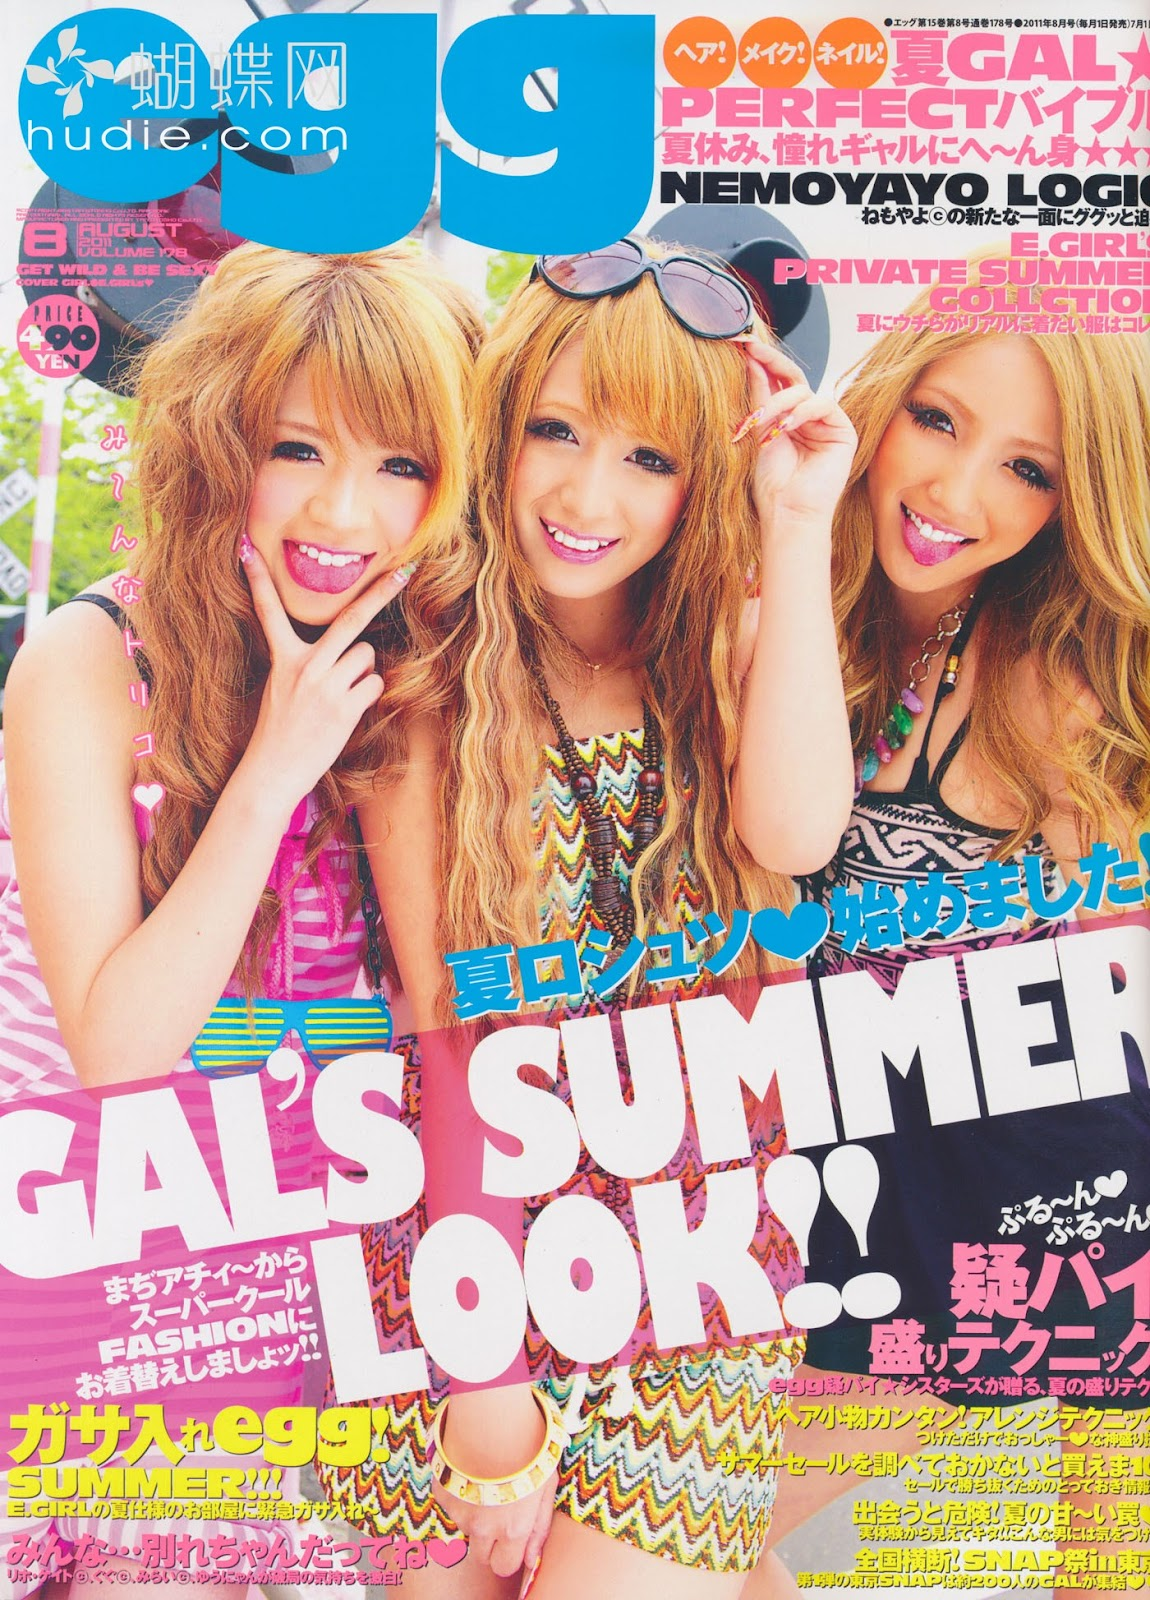 egg august 2011 gyaru magazine scans